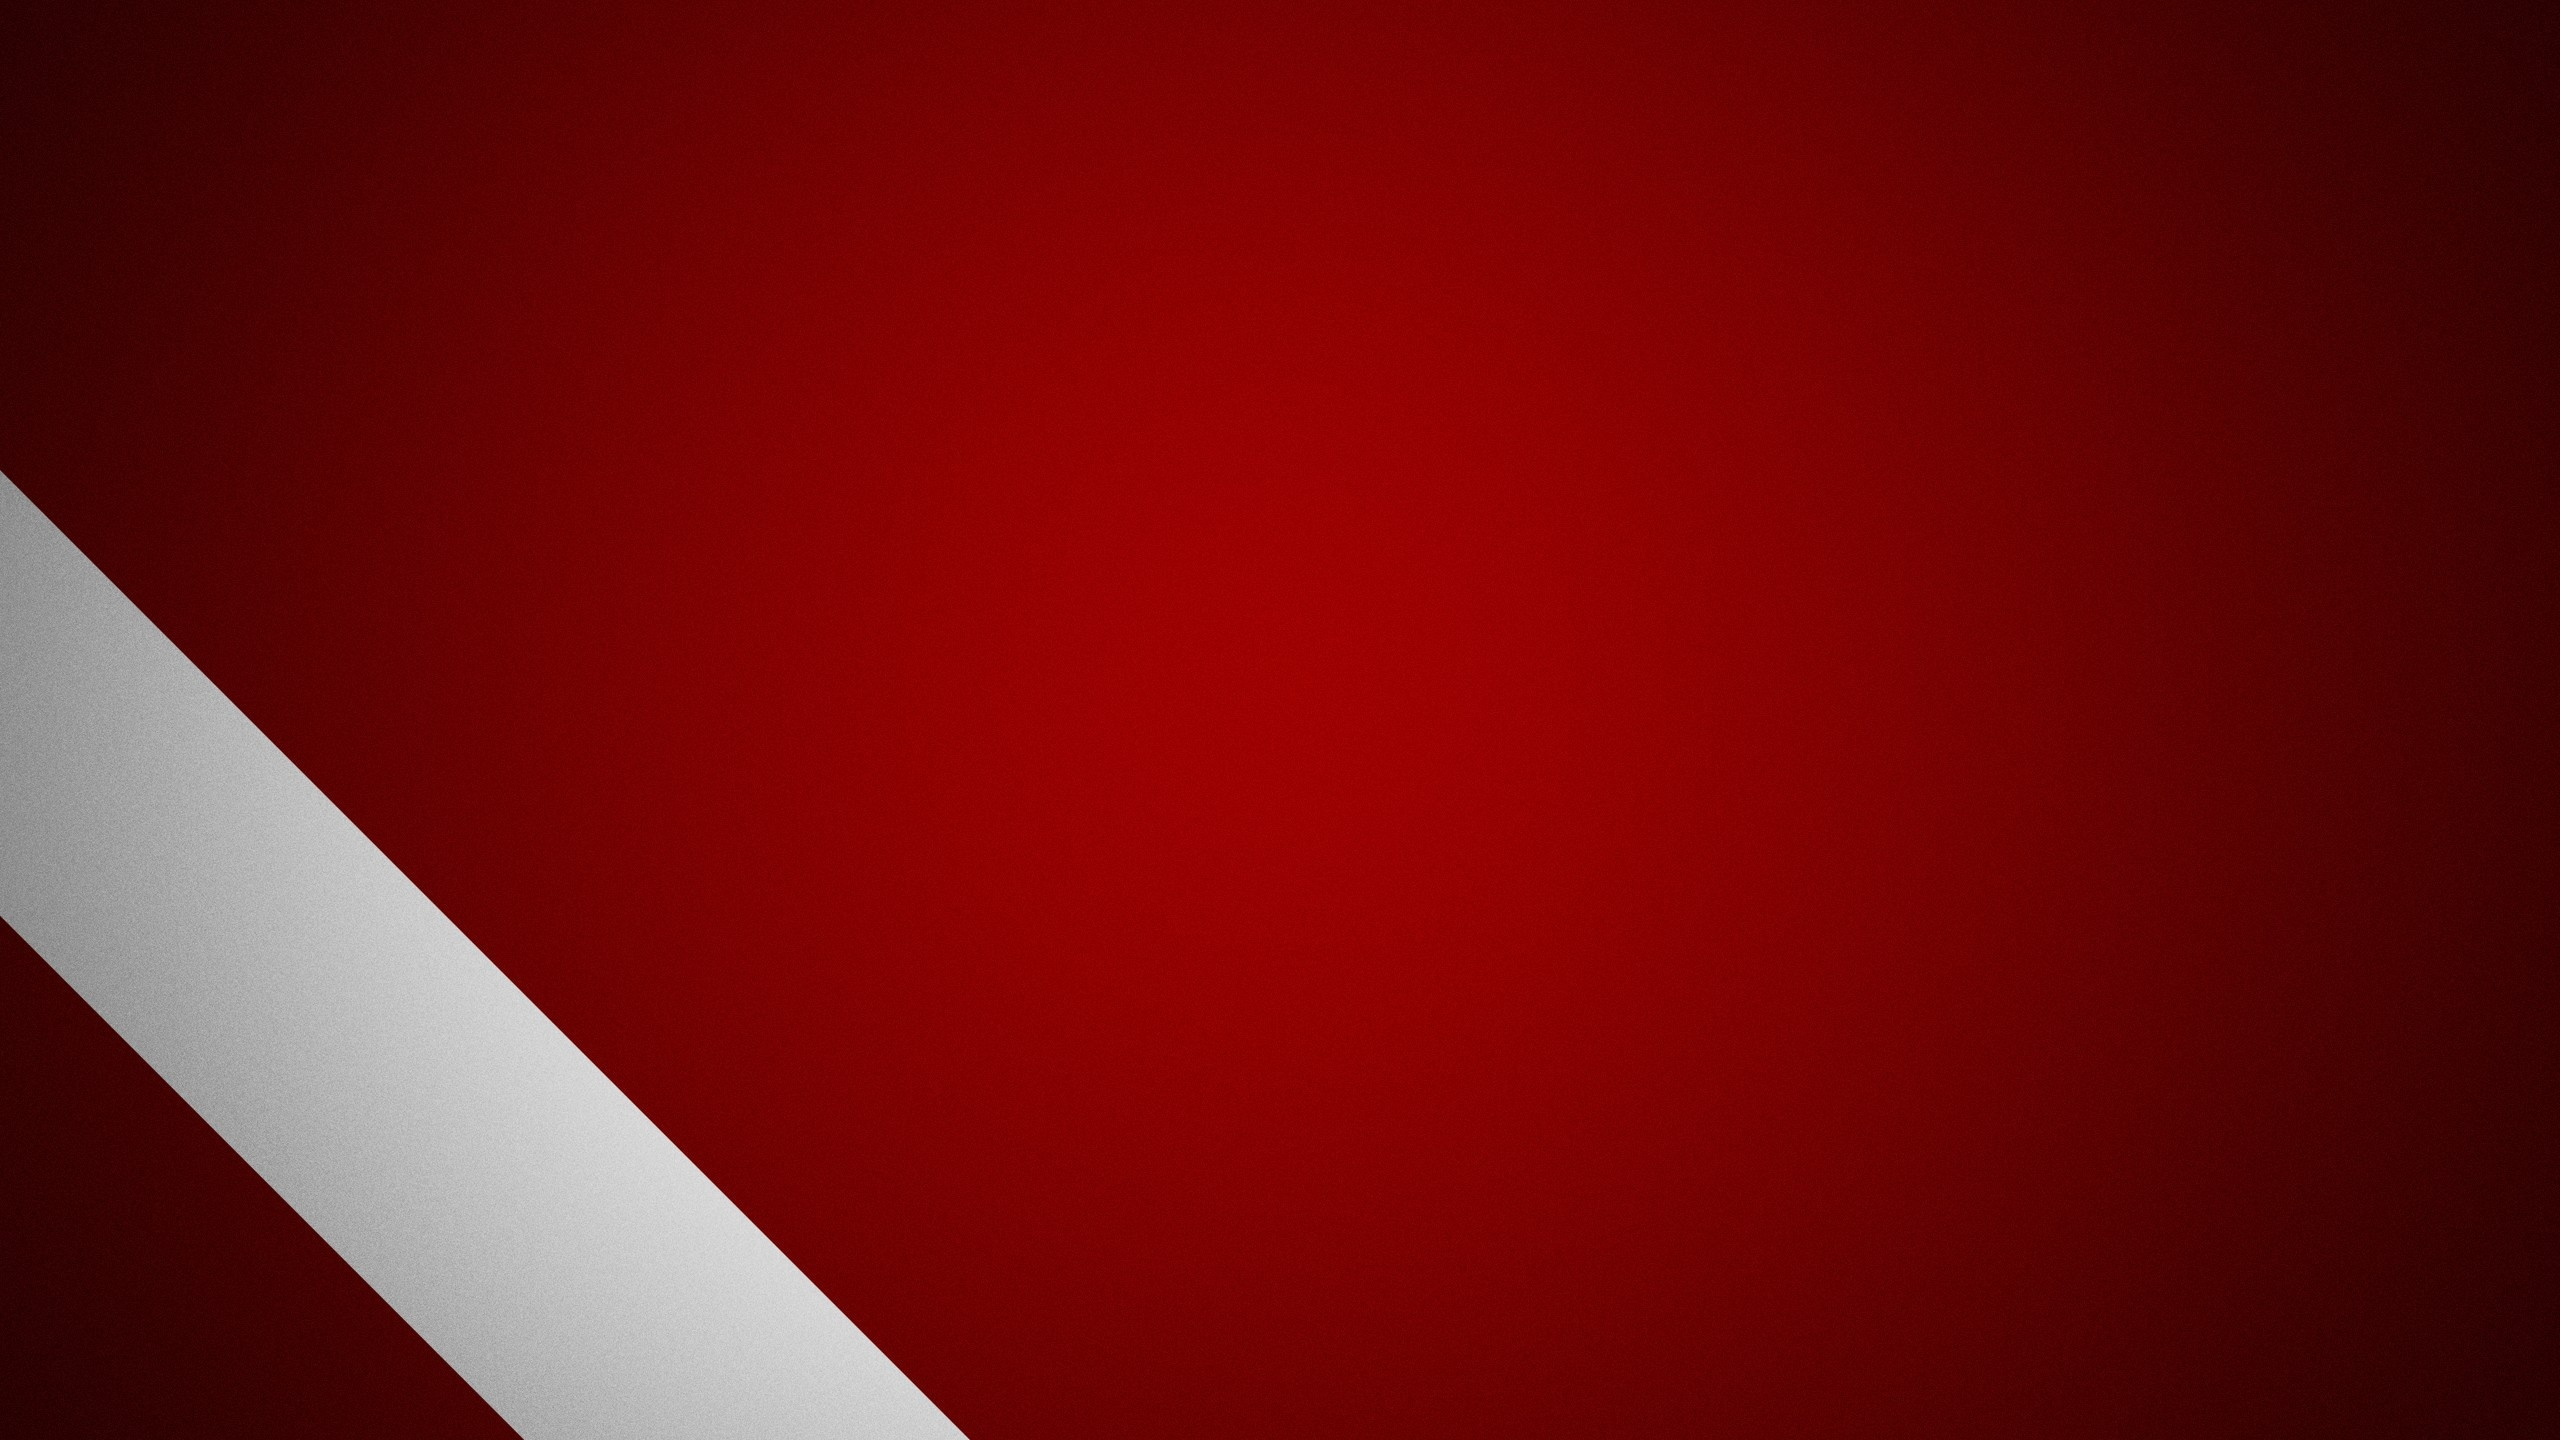 2560x1440 White And Red Desktop PC Mac Wallpaper